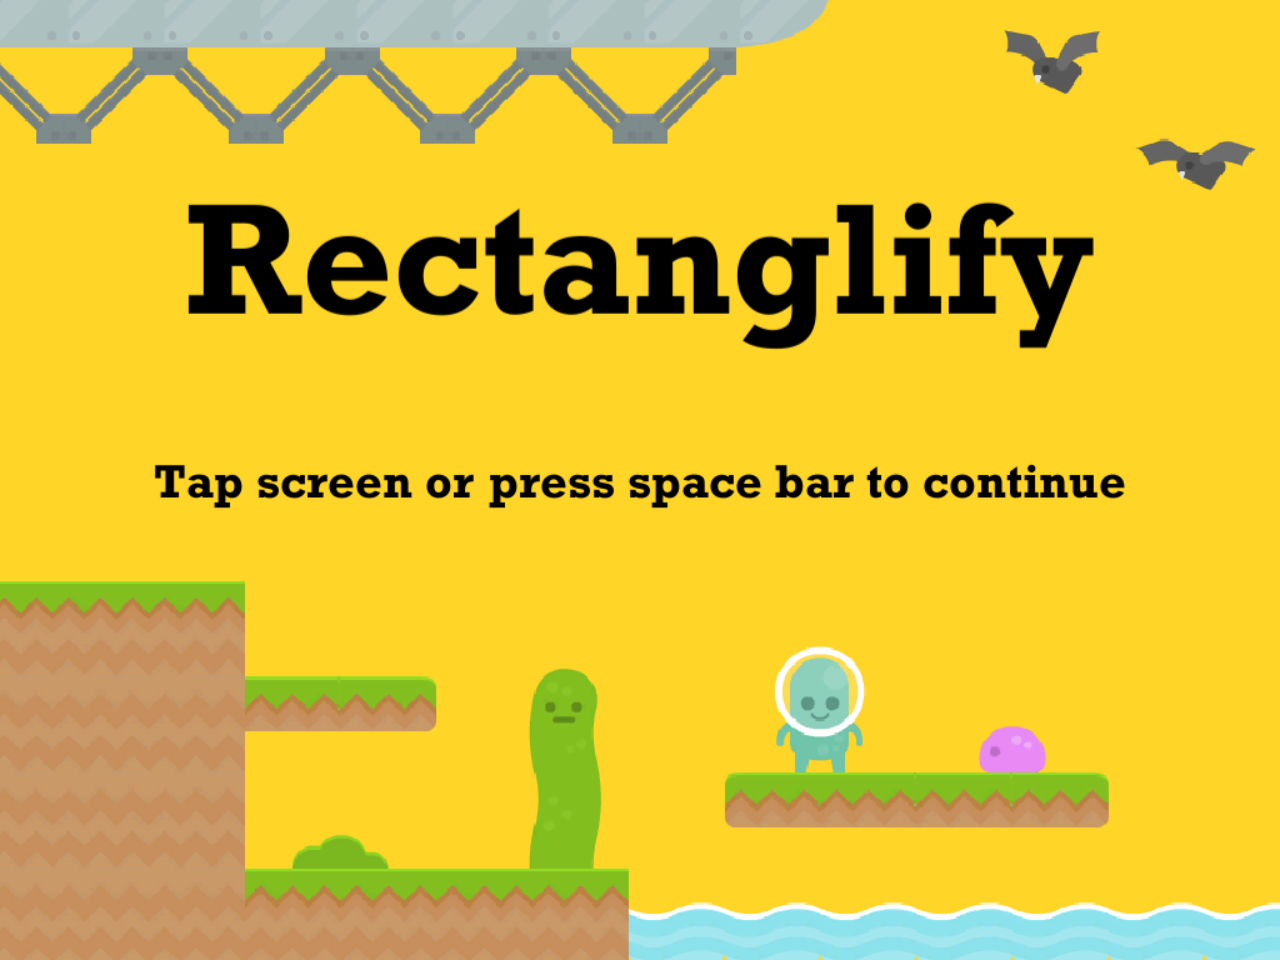 Rectanglify